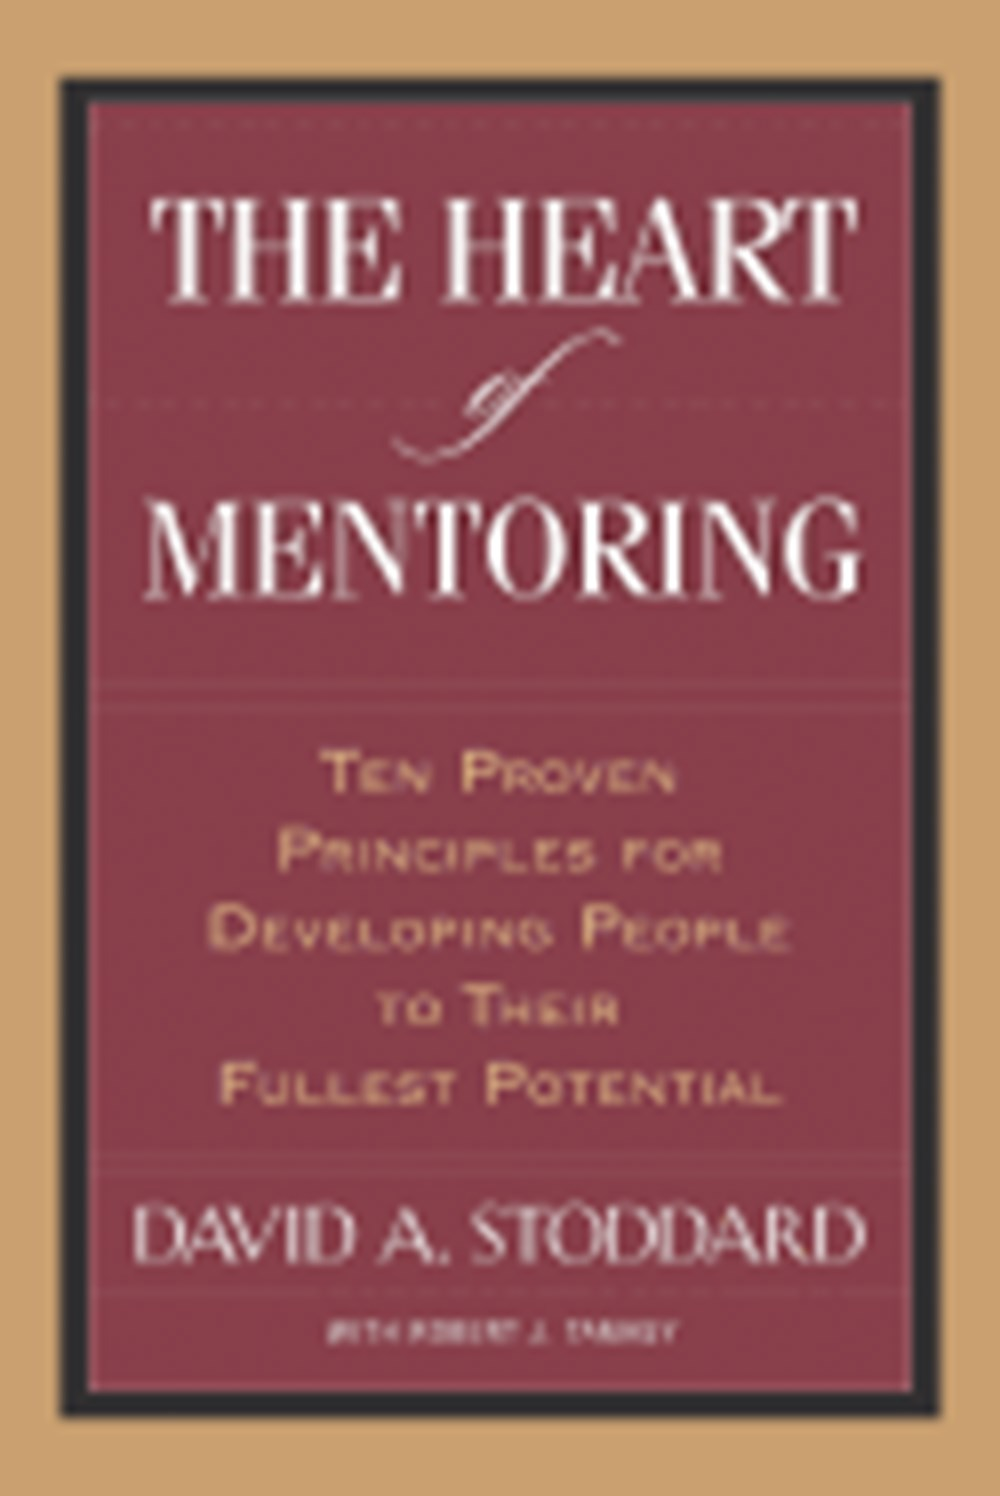 Heart of Mentoring Ten Proven Principles for Developing People to Their Fullest Potential